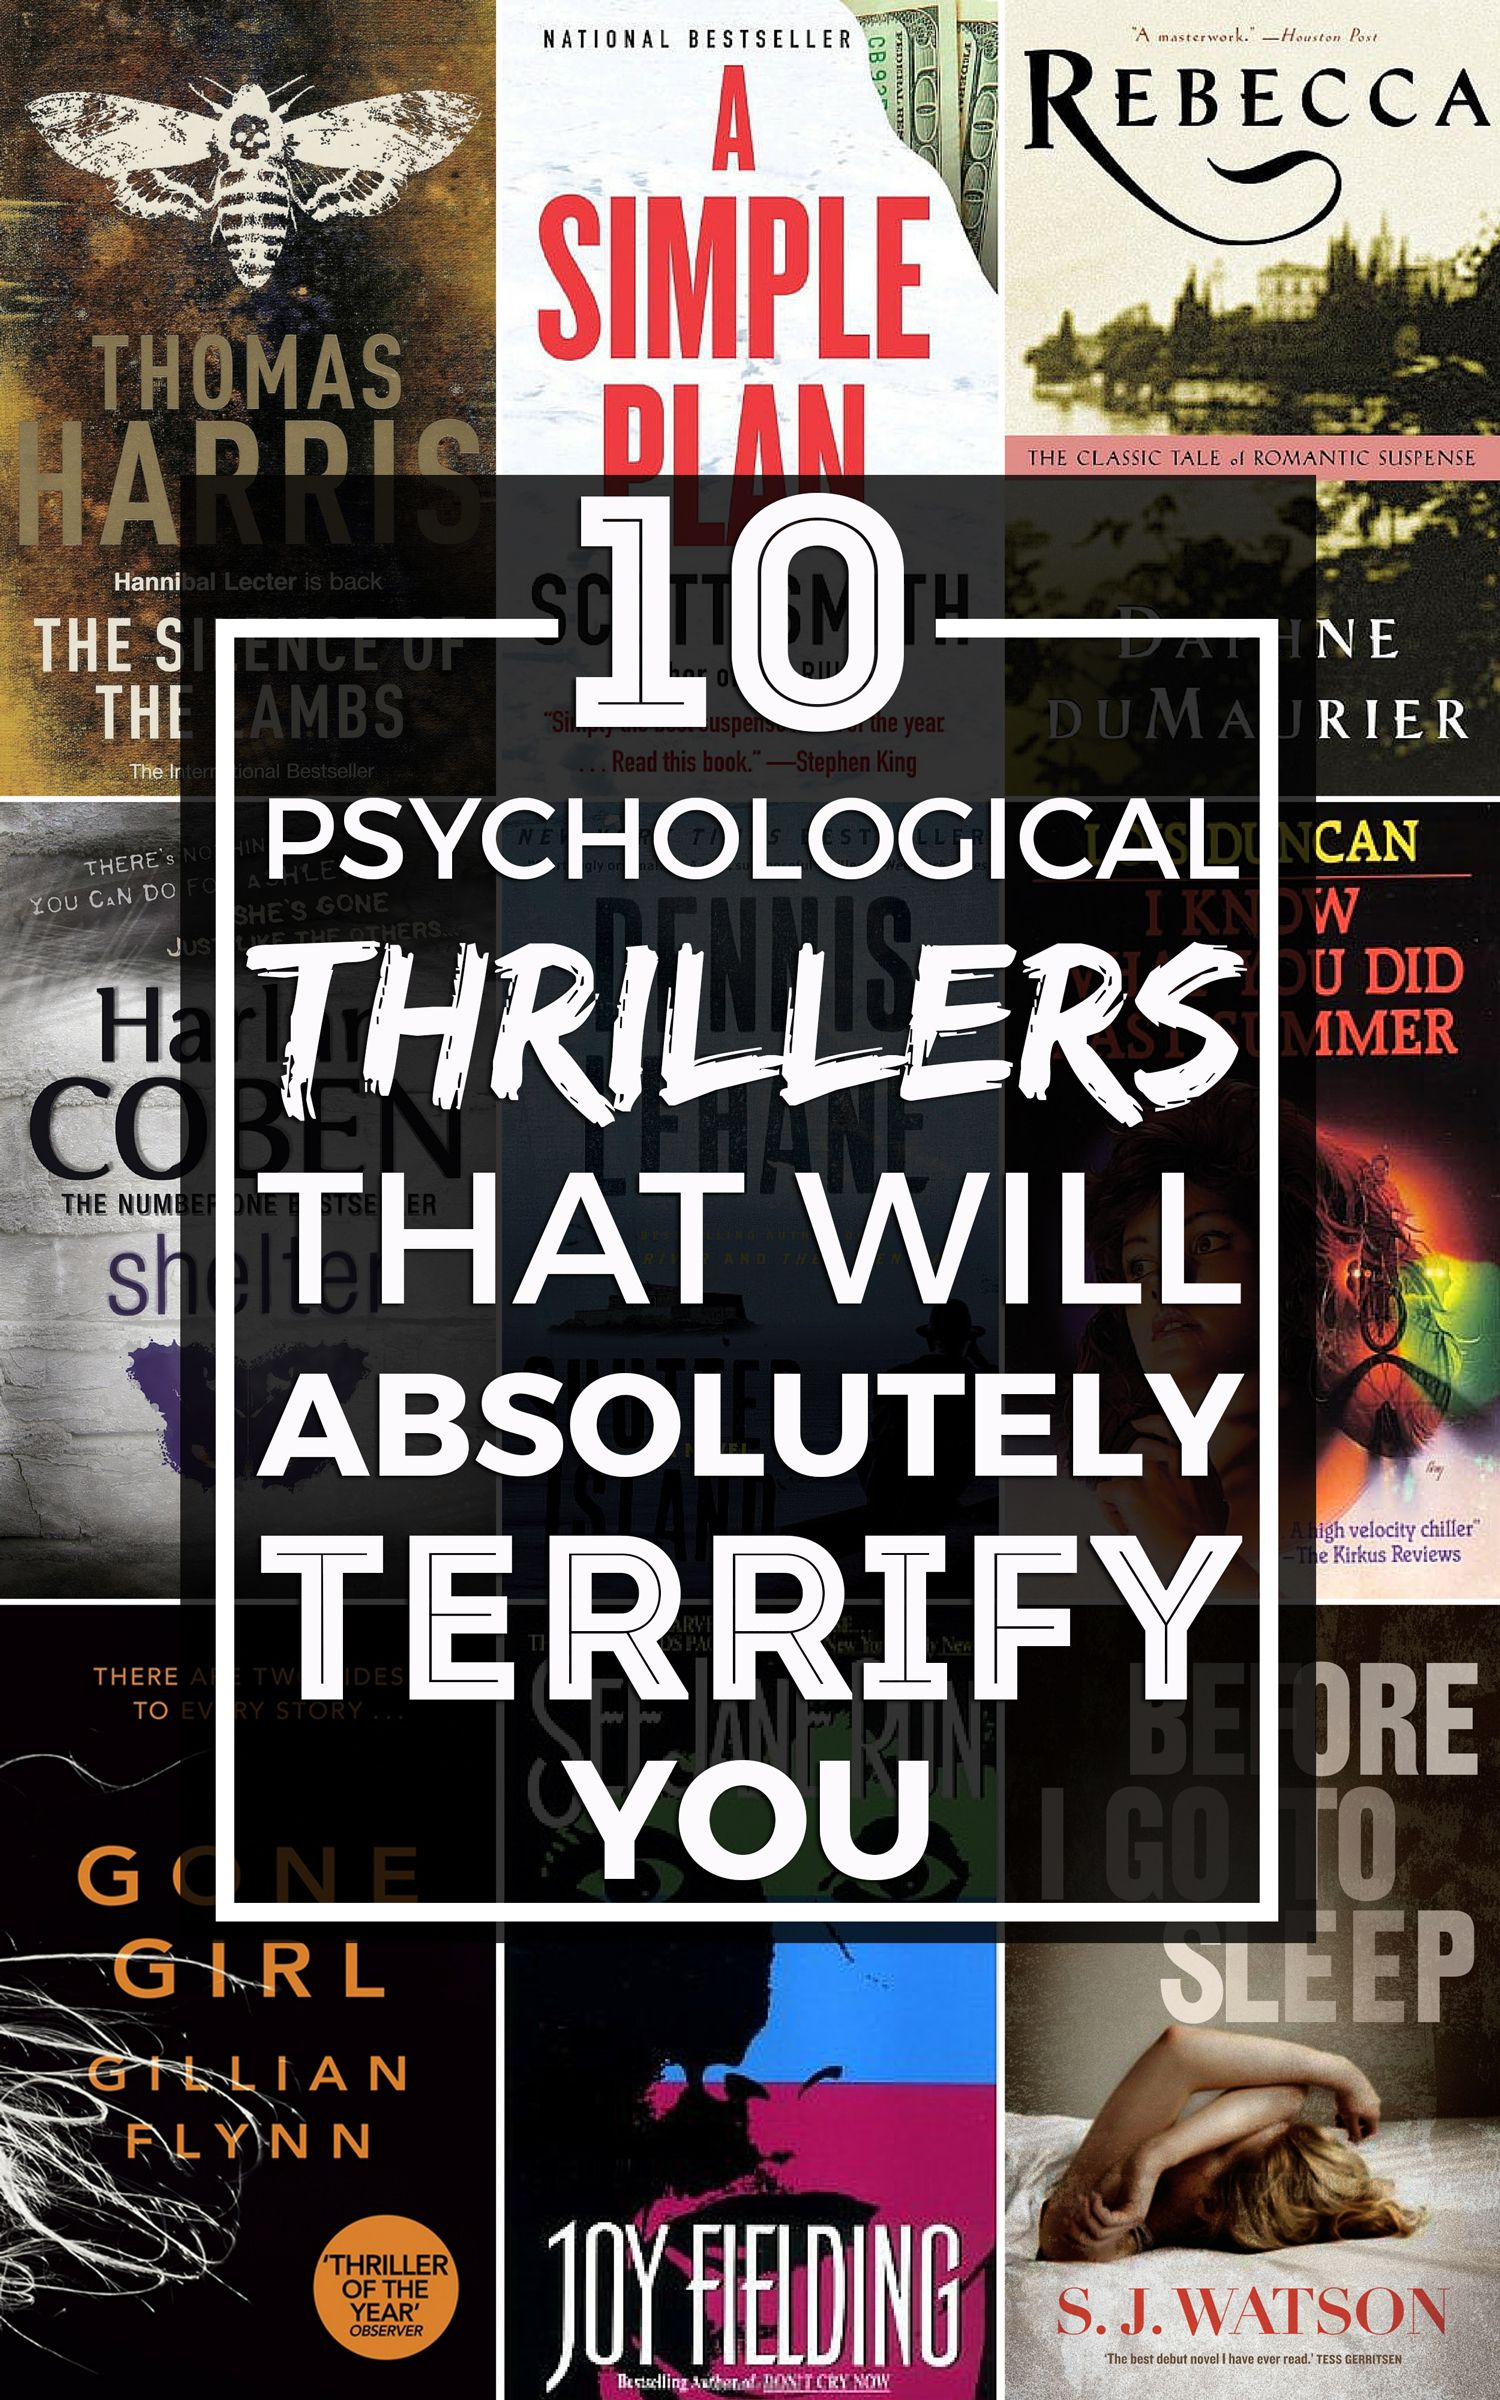 Ten of the scariest psychological thrillers you absolutely MUST read